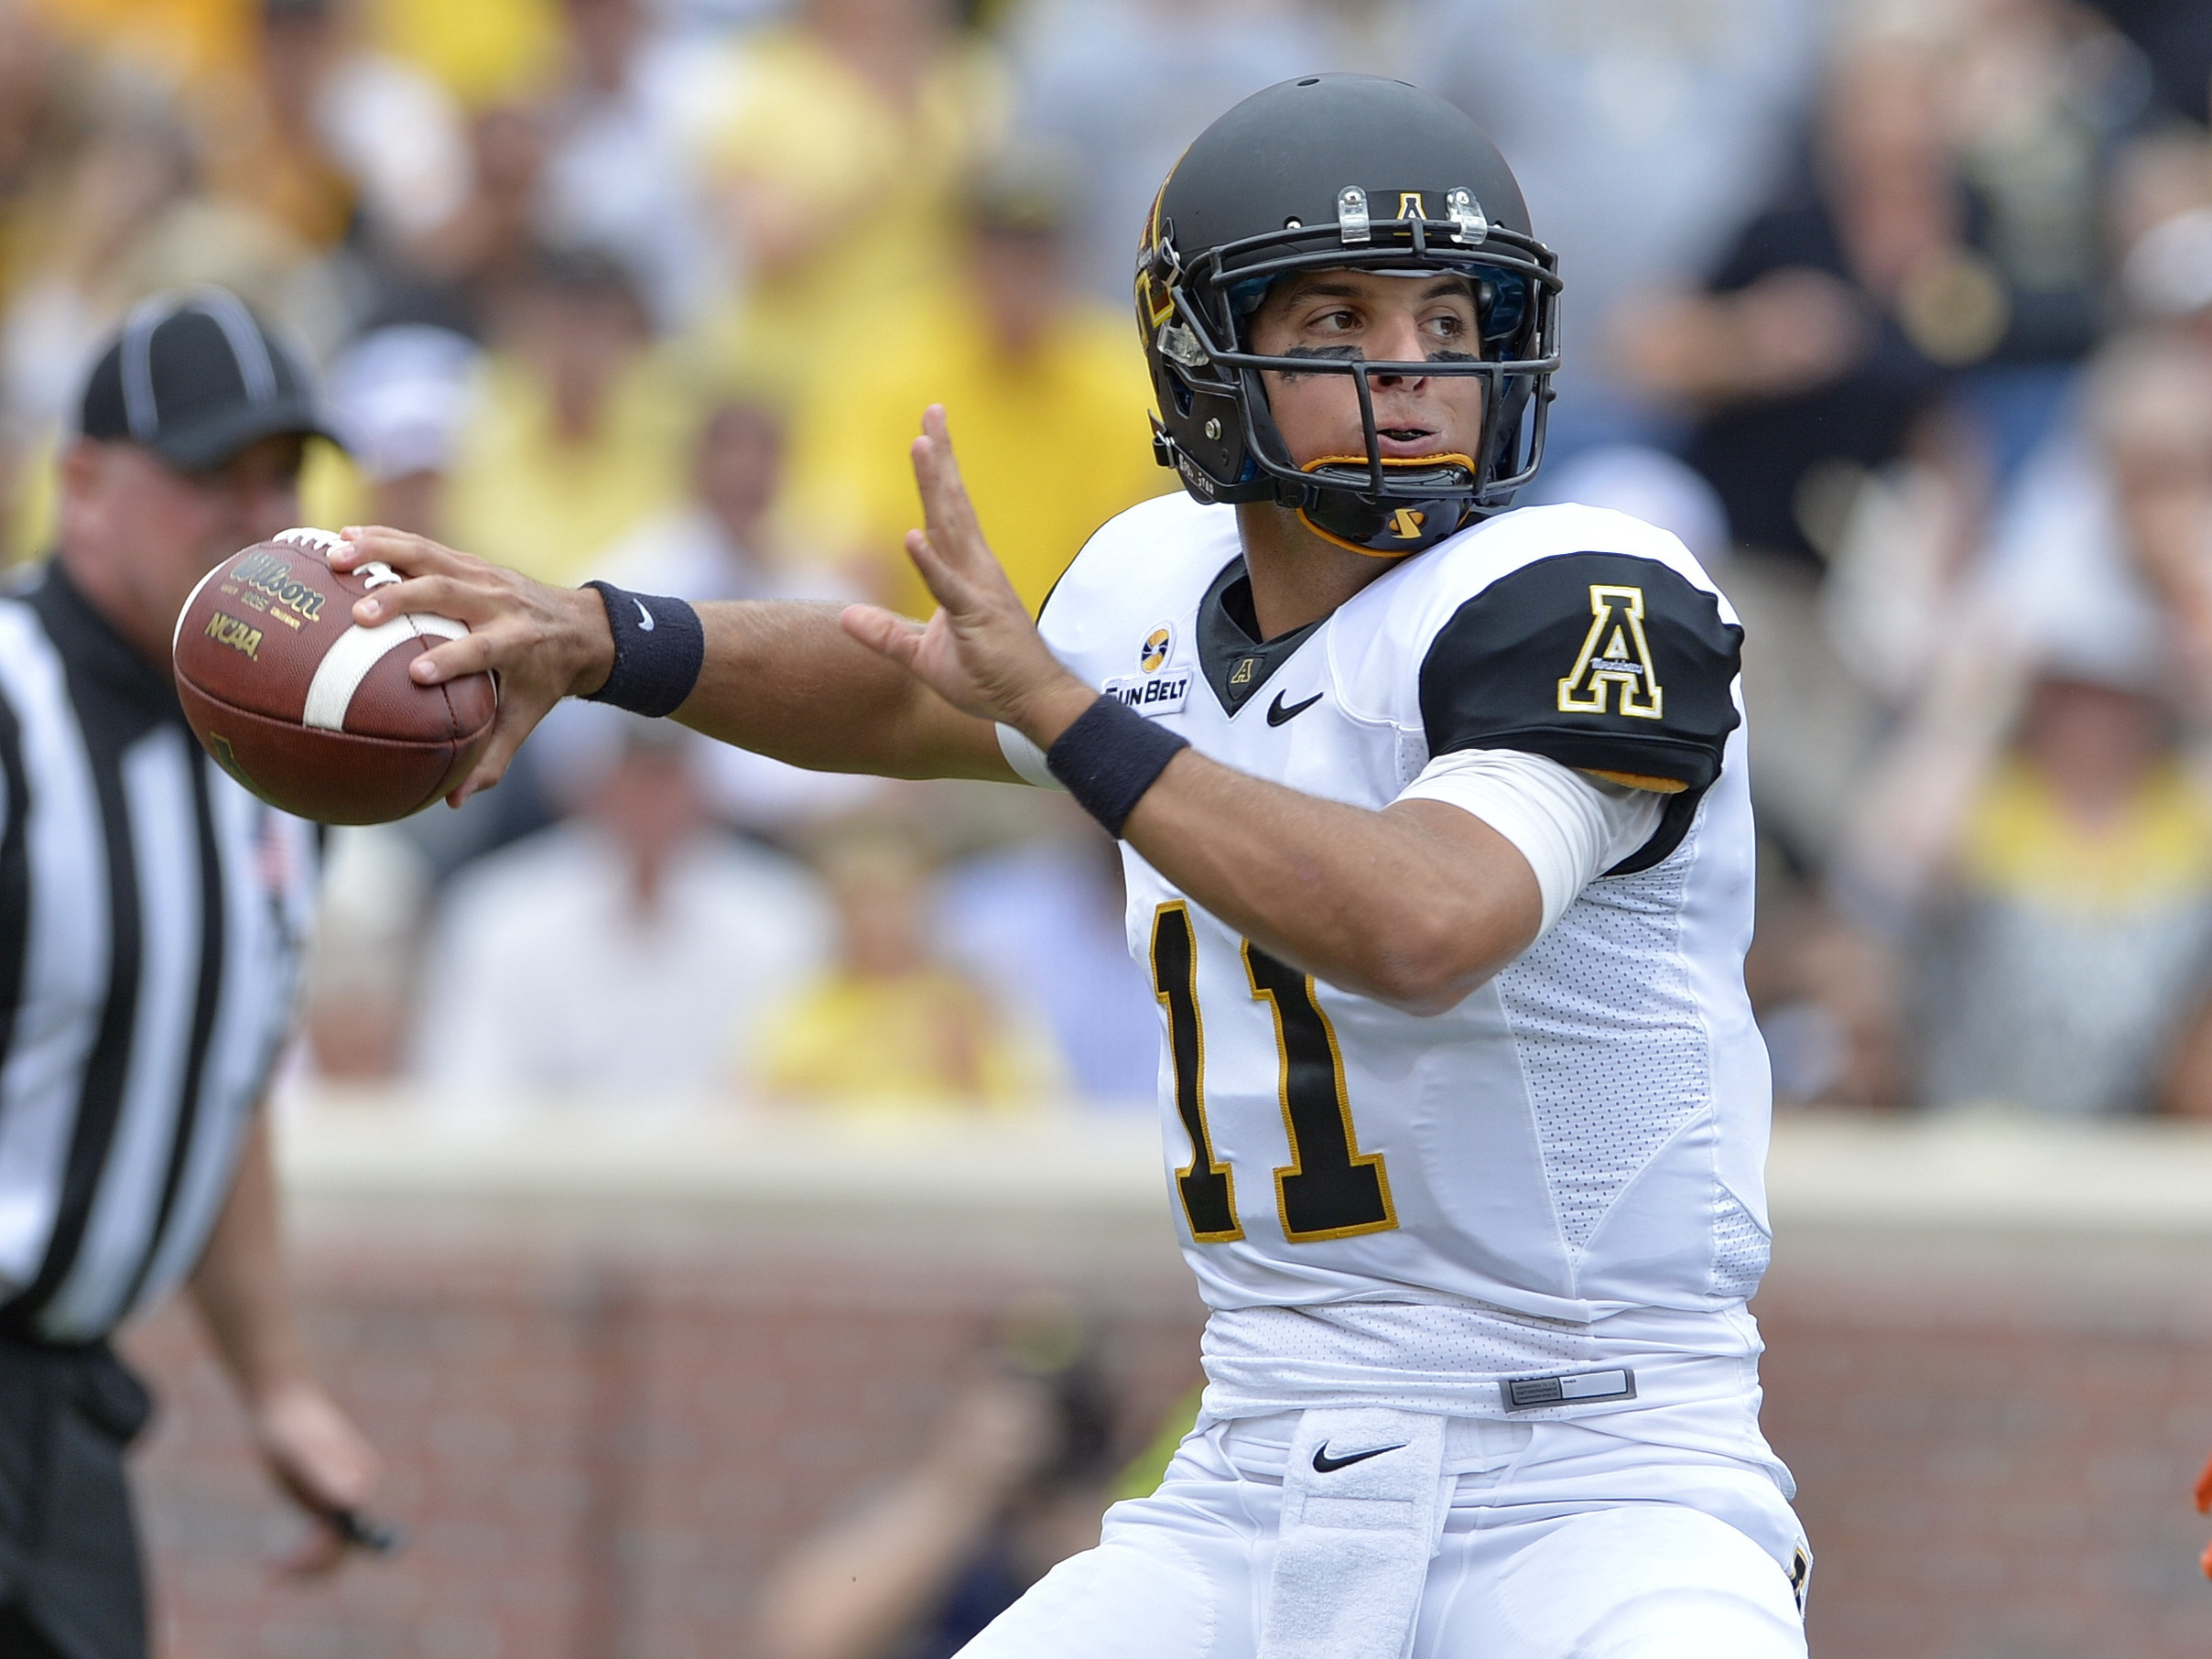 FILE - In this Sept. 12, 2015, file photo, Appalachian State quarterback Taylor Lamb throws a pass during the first half of an NCAA college football game against Clemson, in Clemson, S.C. (AP Photo/Richard Shiro, File)